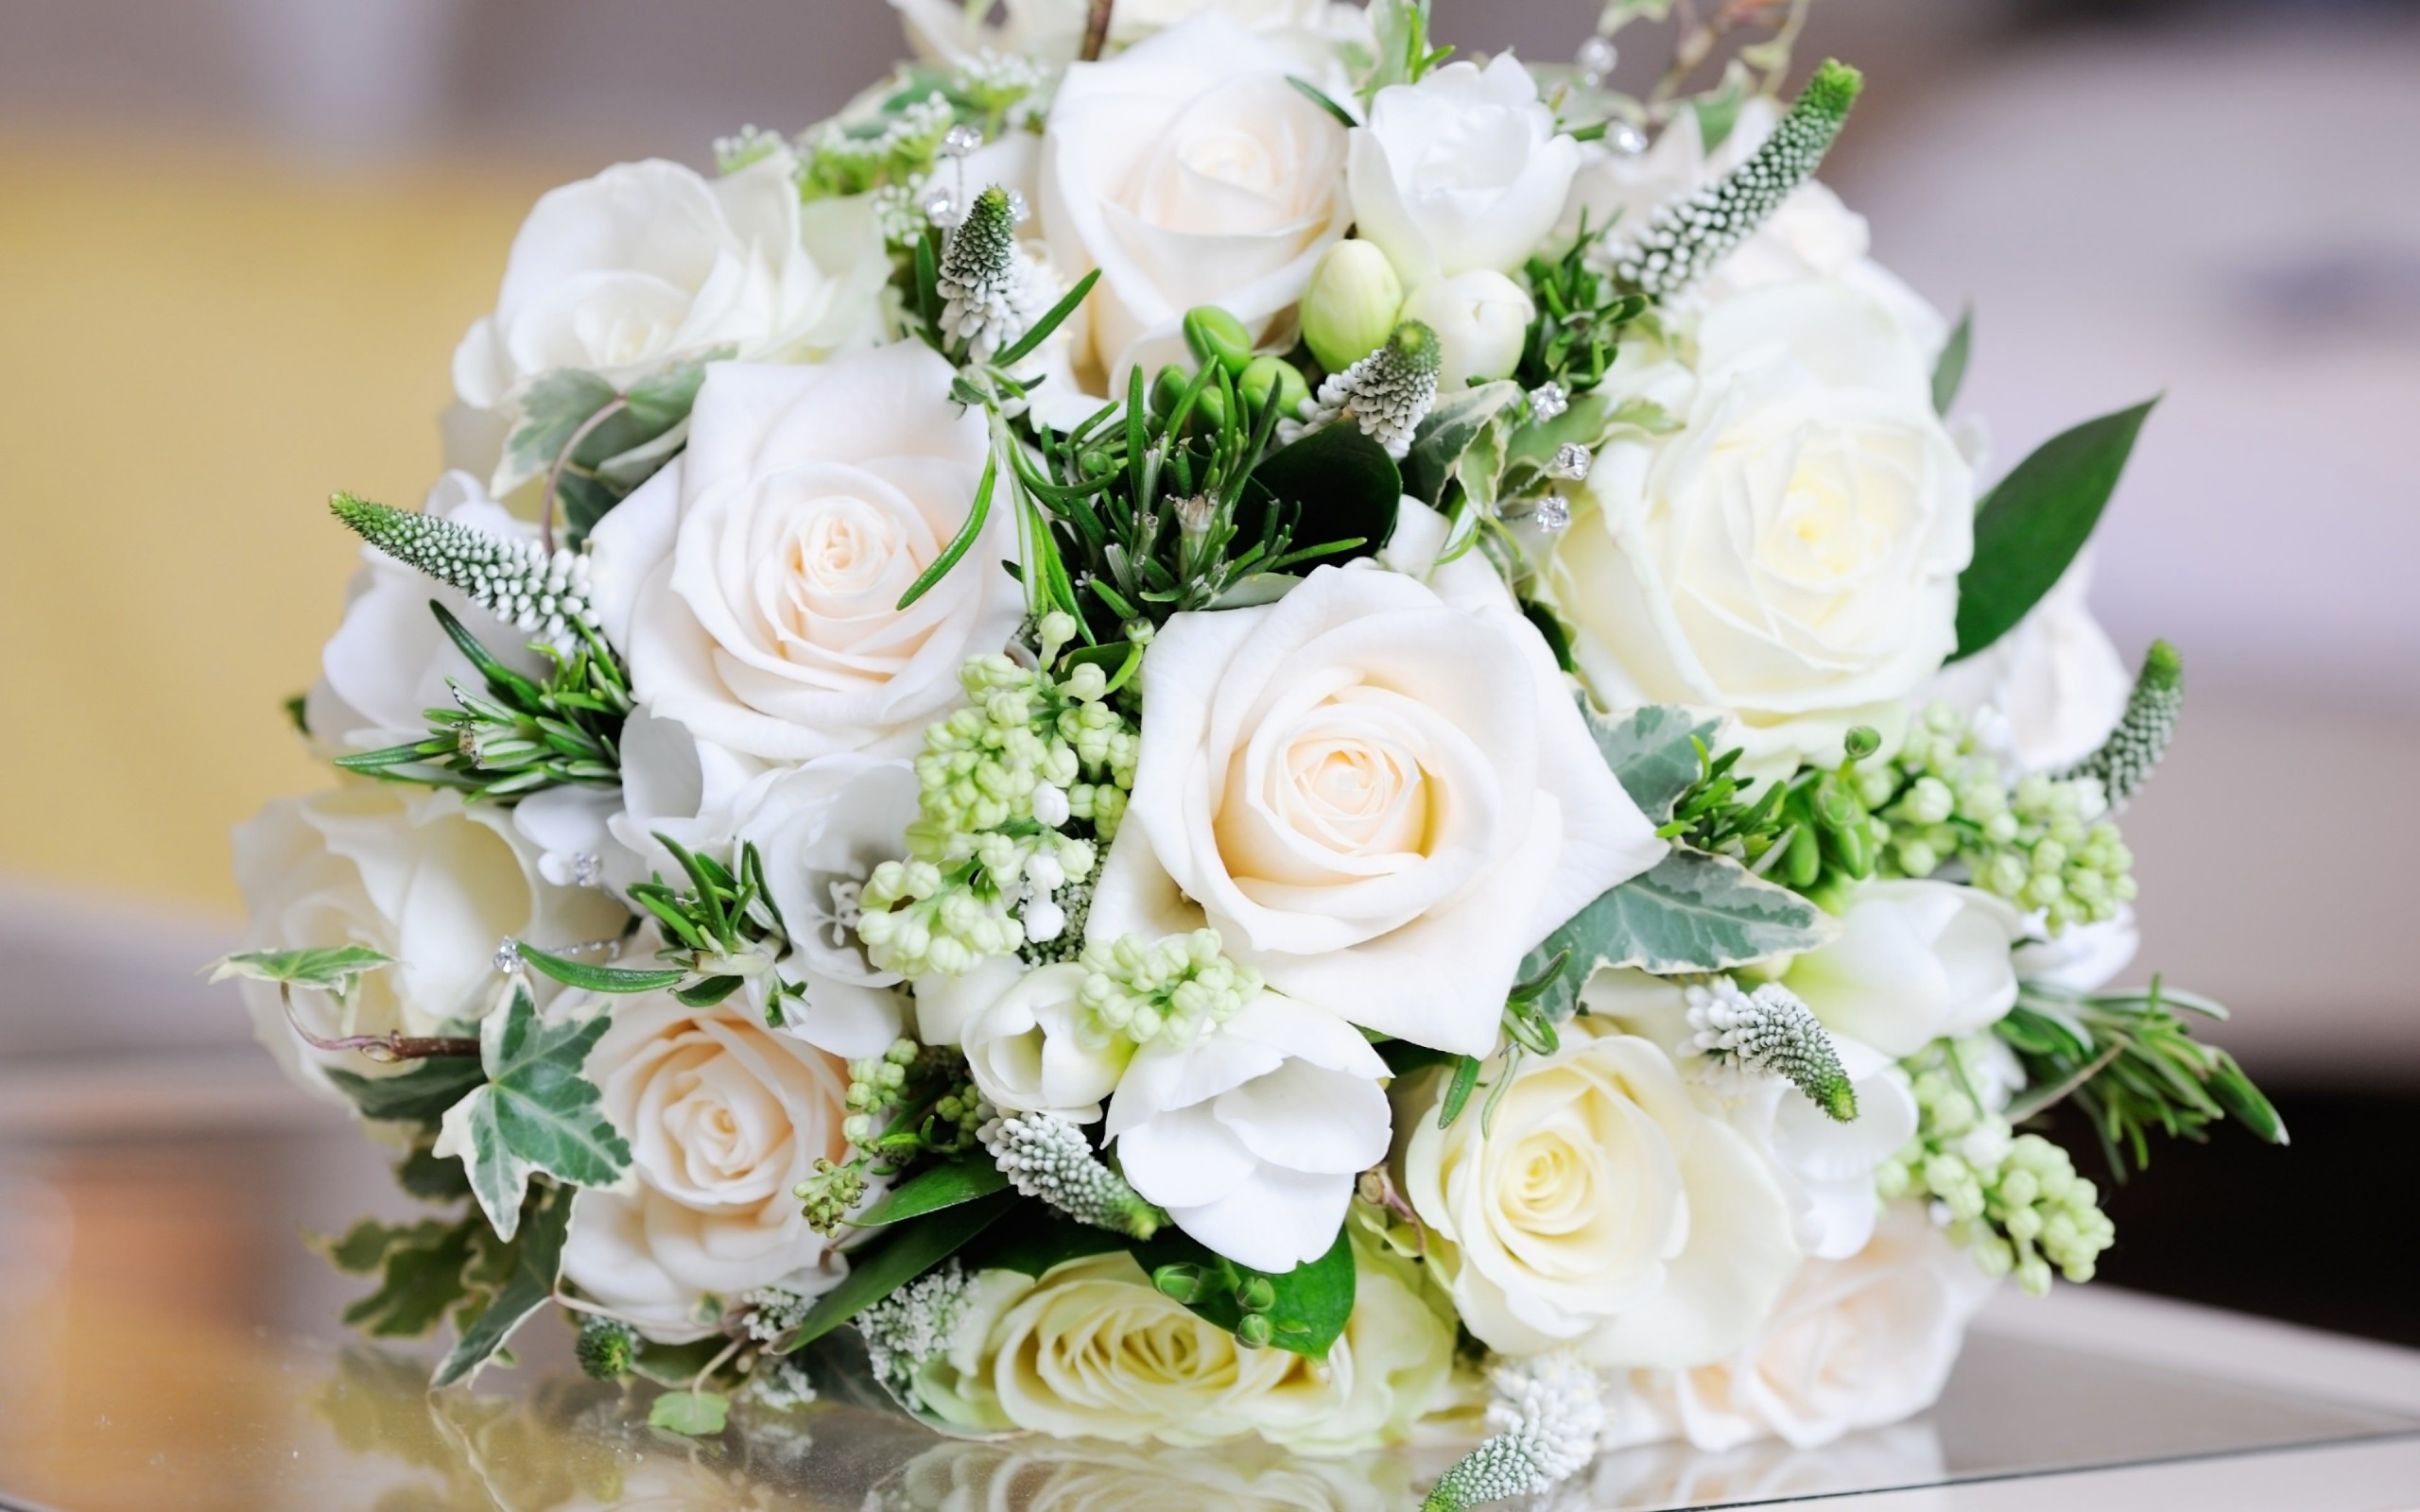 Beautiful White Roses Bouquet Wallpaper for Desktop 2560x1600